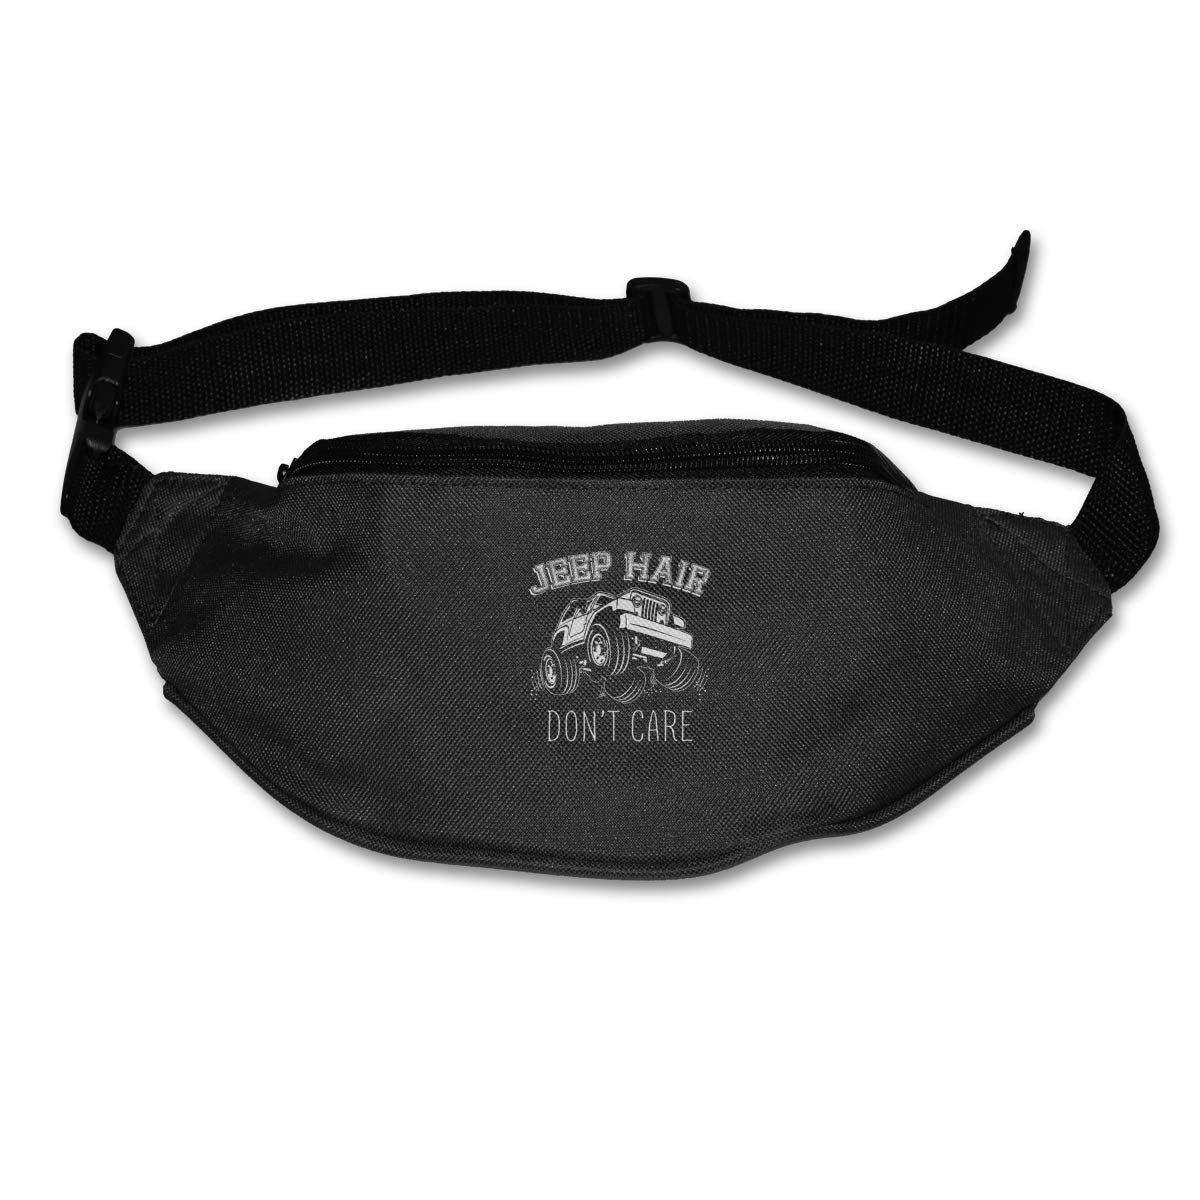 Jeep Hair Dont Care Sport Waist Pack Fanny Pack Adjustable For Travel